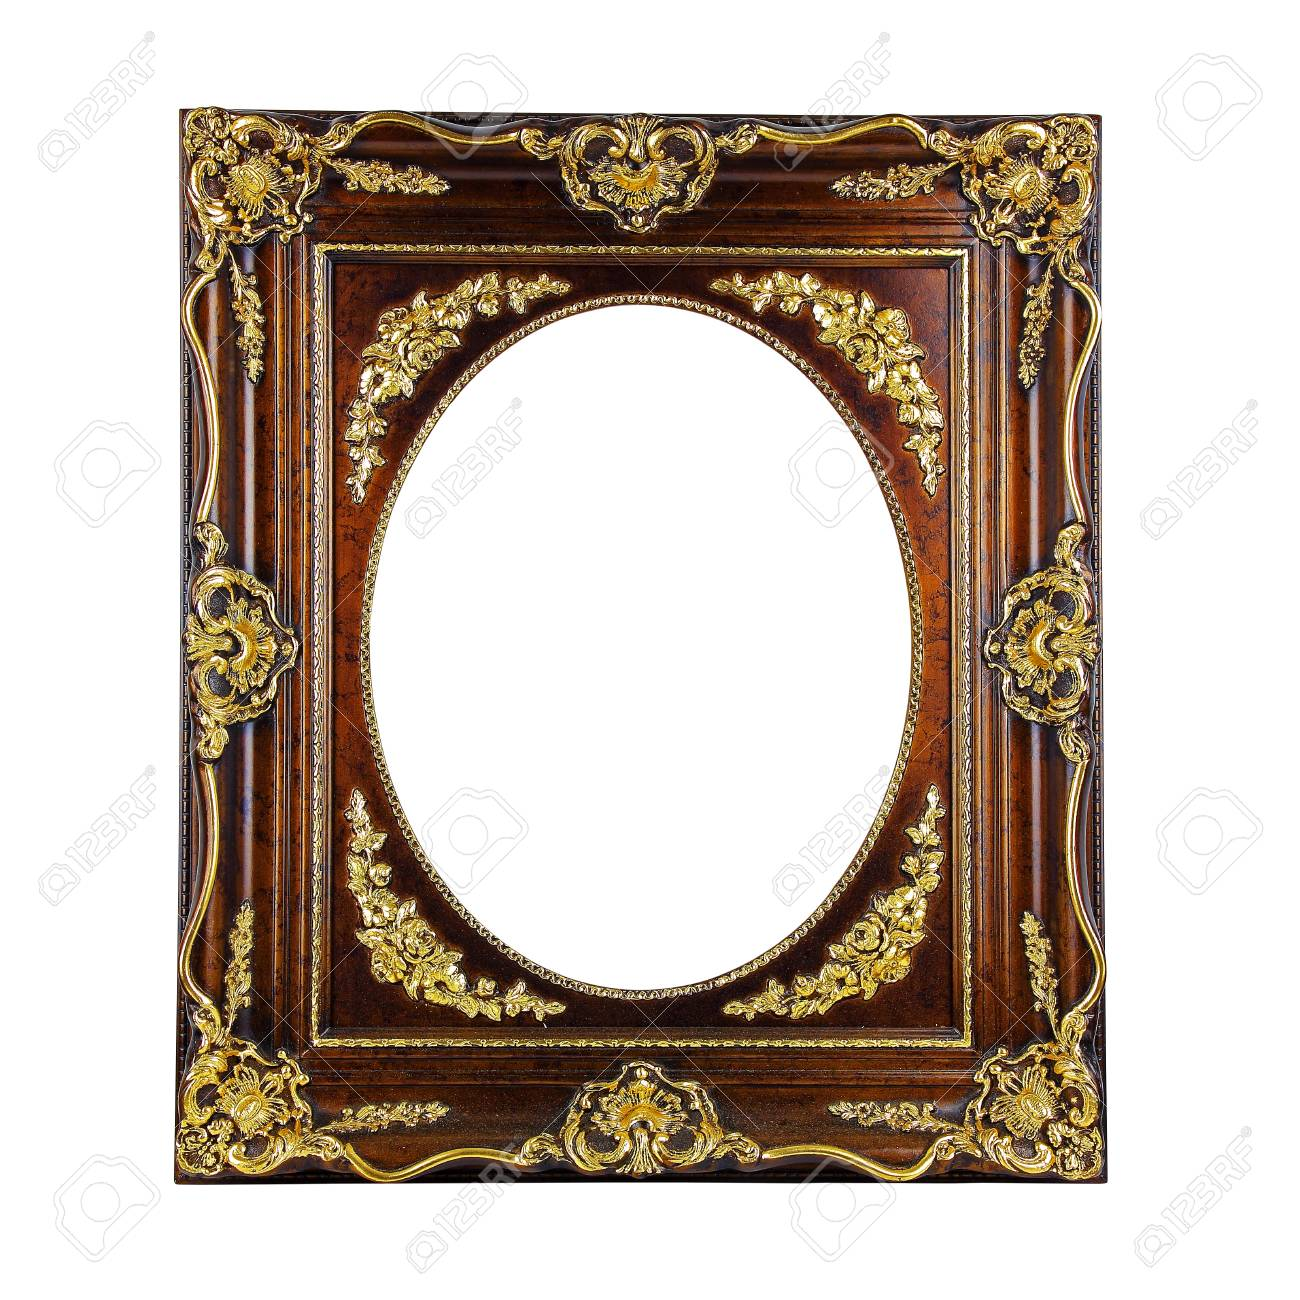 Gold Ornate Frame Isolated On A White Background Stock Photo ...